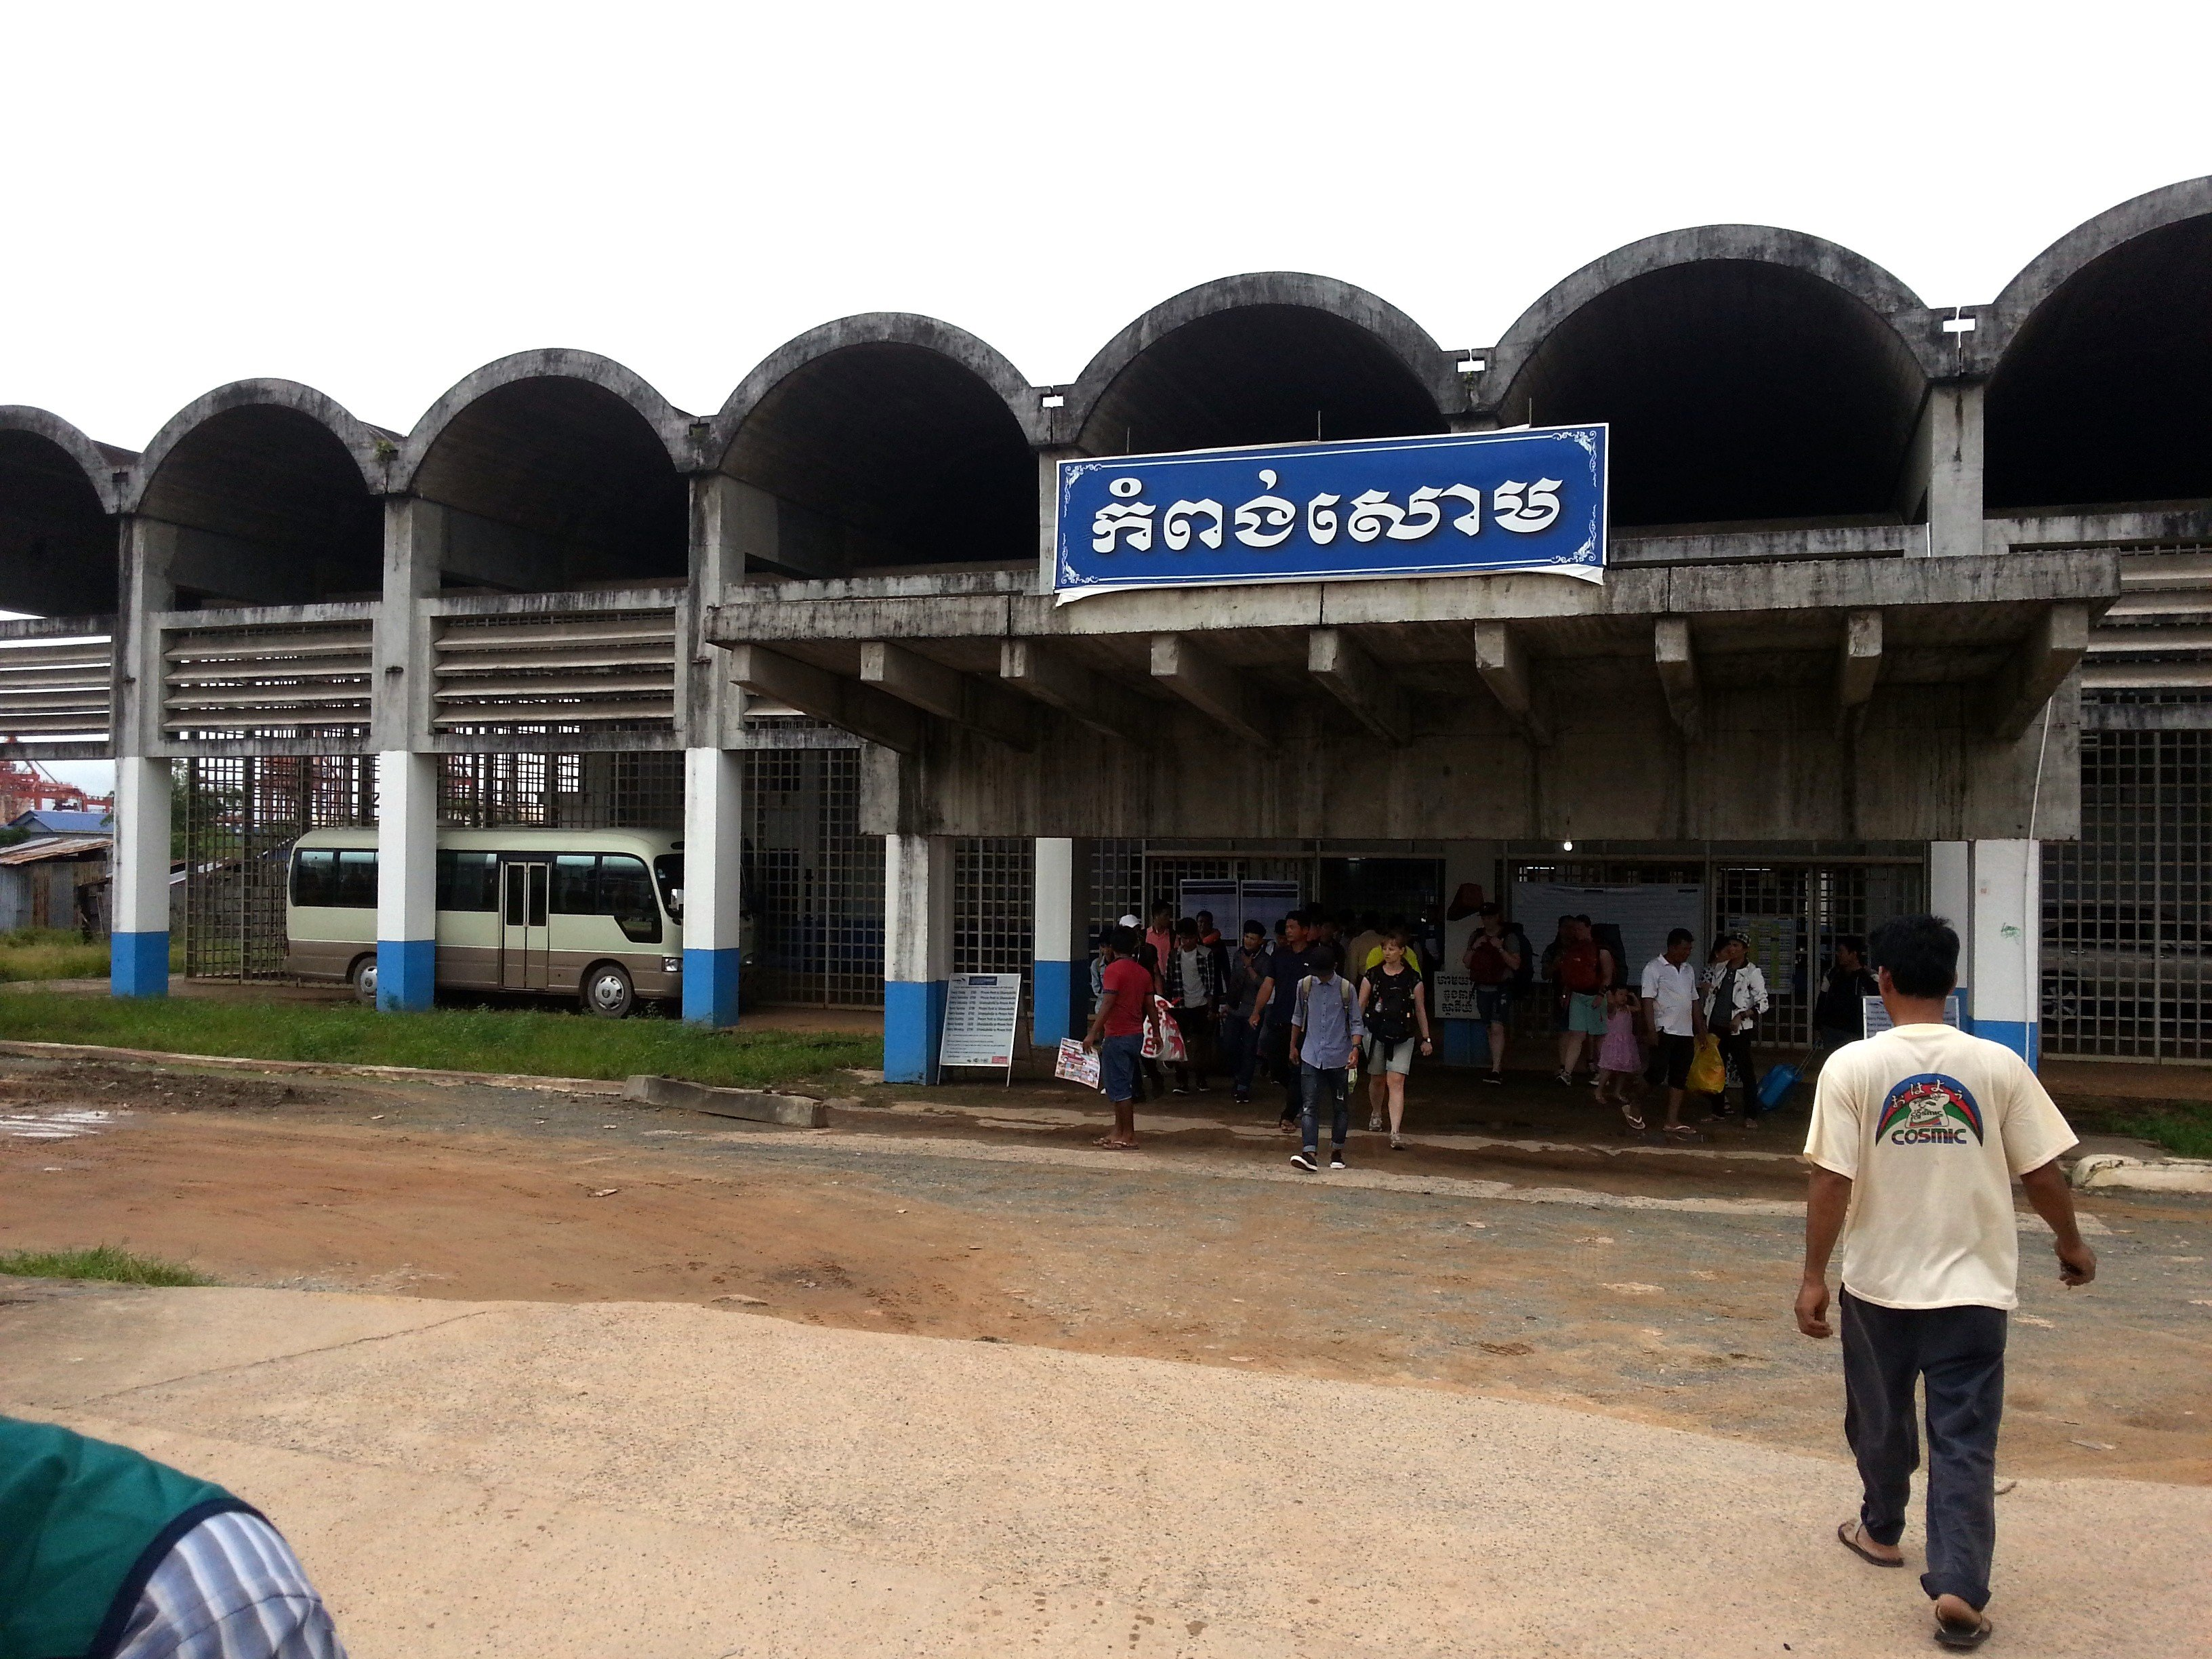 Arrival at Sihanoukville Railway Station